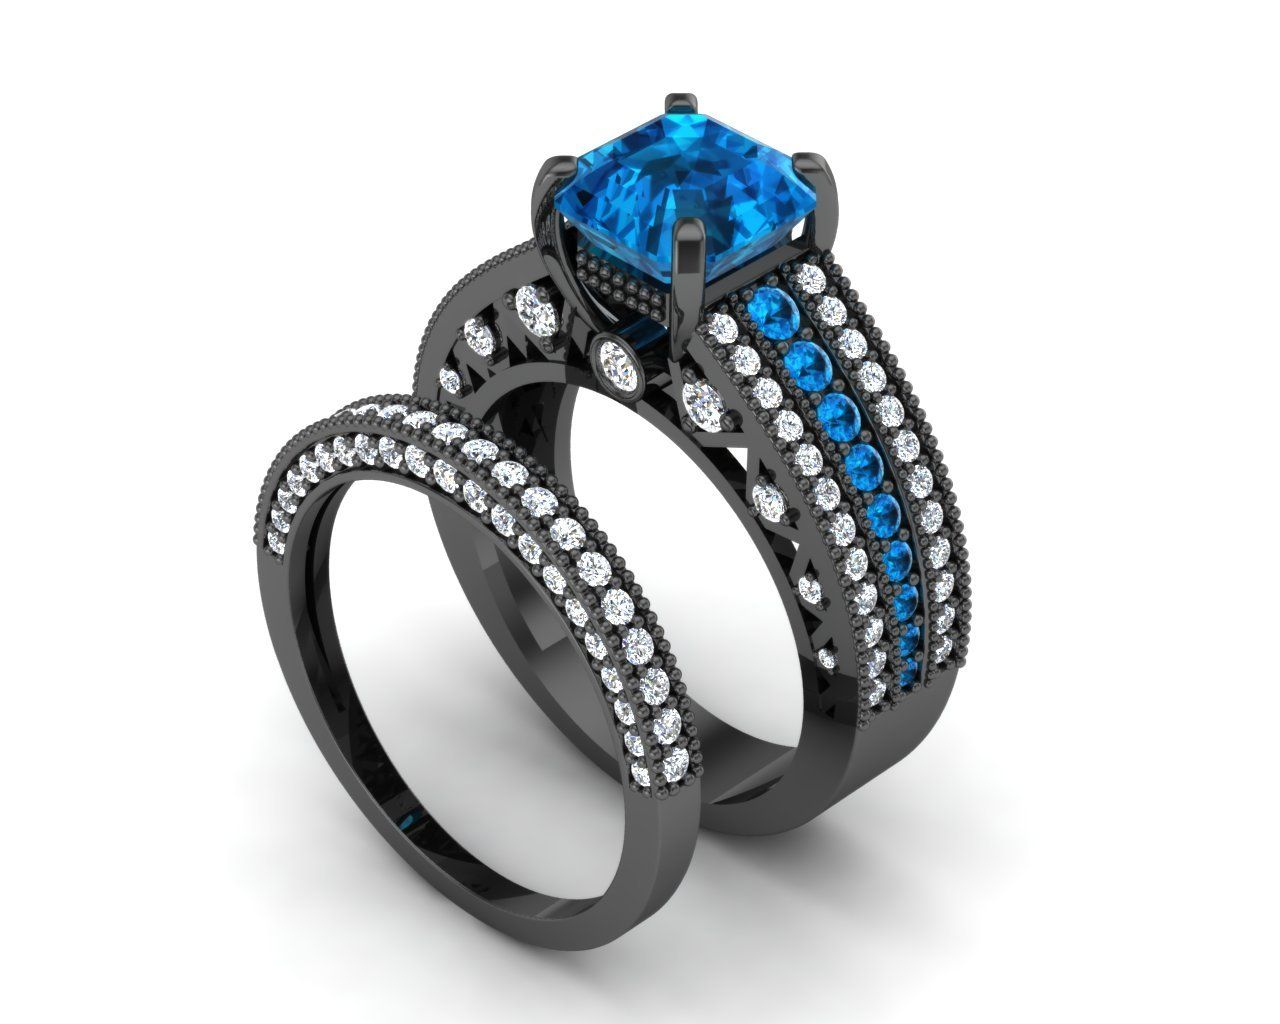 Incredible Ring Set Engagement Ring Temple of the Ancient Dragon Exclusive  Incredible London Blue Topaz Center with London Blue Topaz Accents over 2 Carat Total Weight  Diamond Accents over 1.5 Carat Total Weight  Durable Construction and Incr...